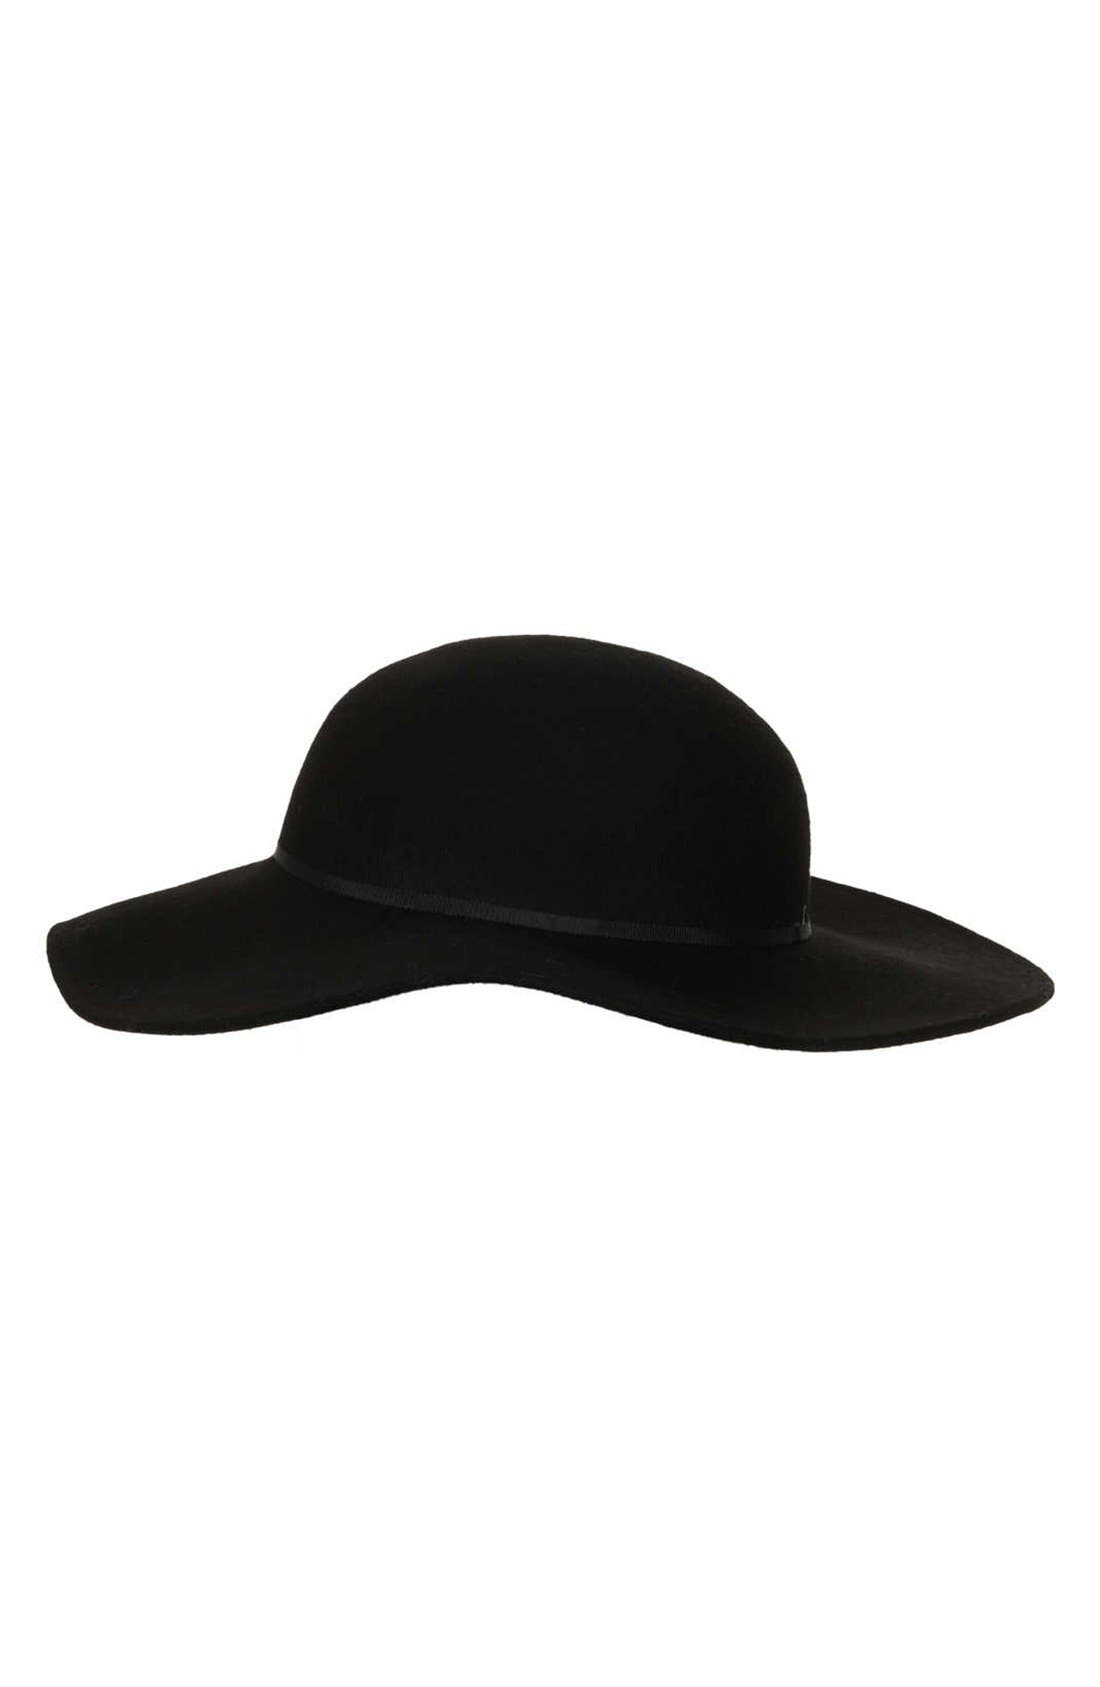 Alternate Image 1 Selected - Topshop Floppy Wool Felt Hat